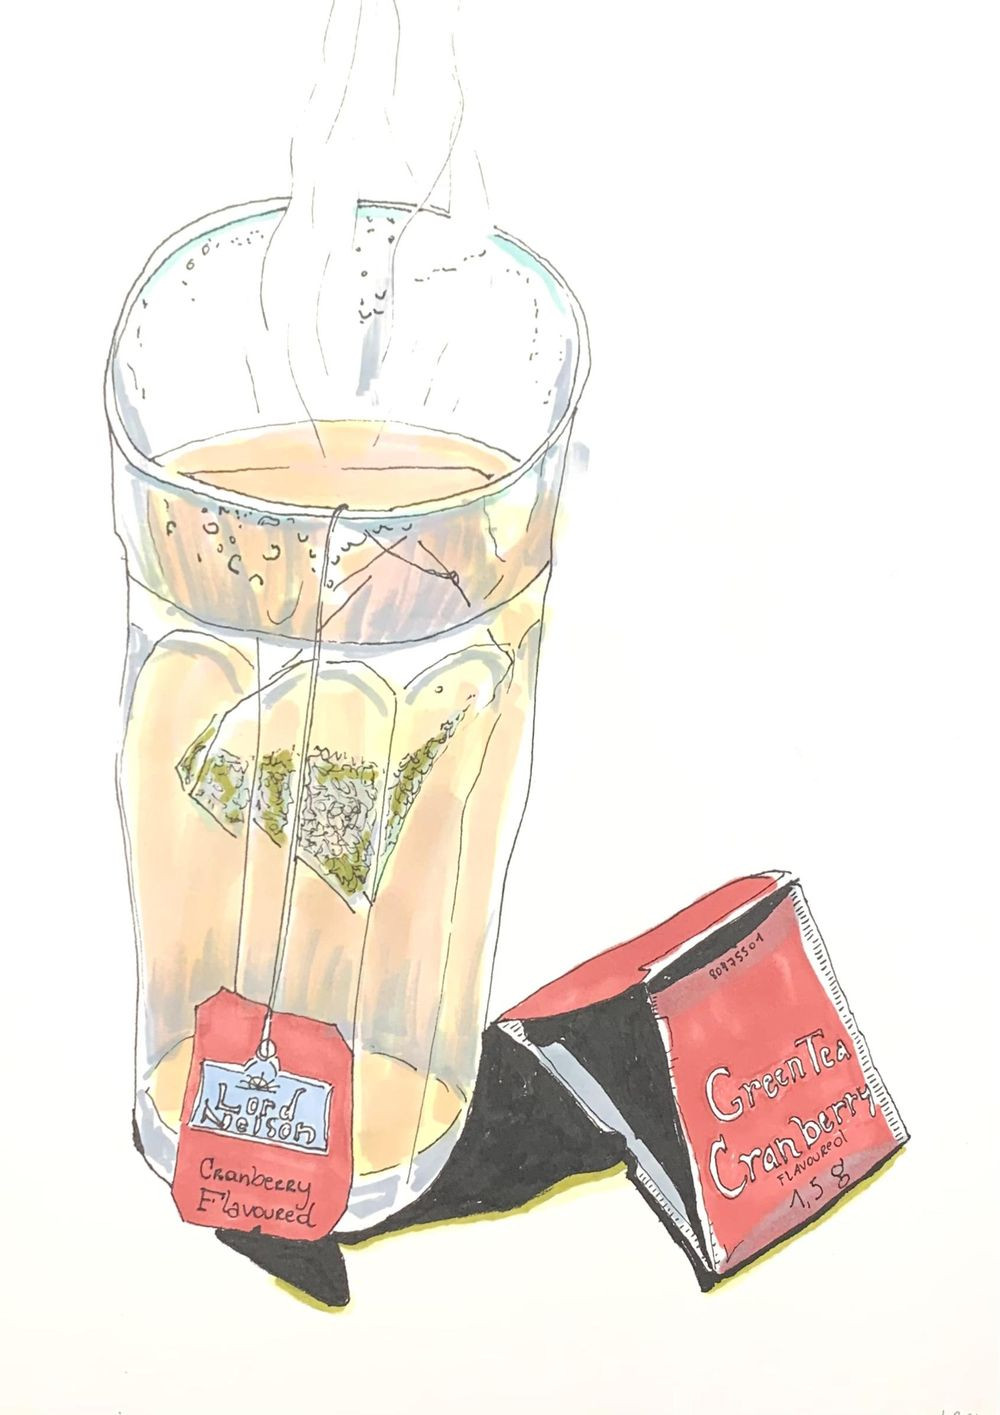 Daily Food Drawing Practice - image 2 - student project